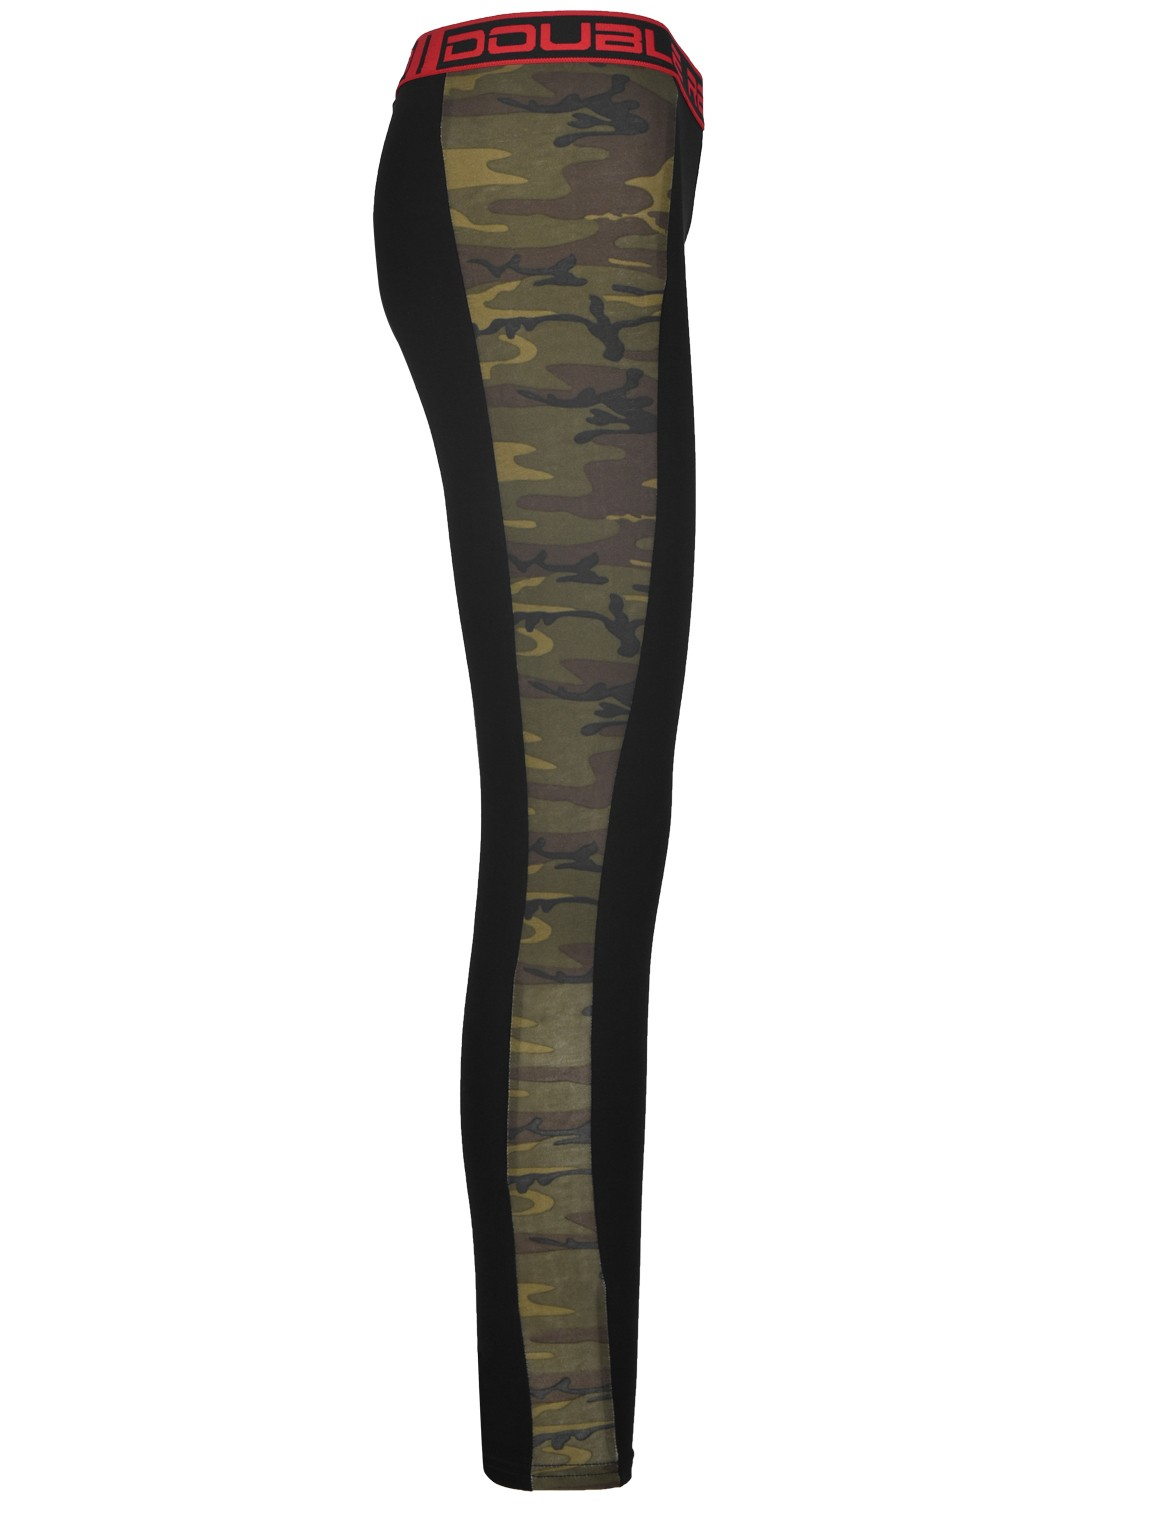 RED LEGGINS Grey/Green Camo